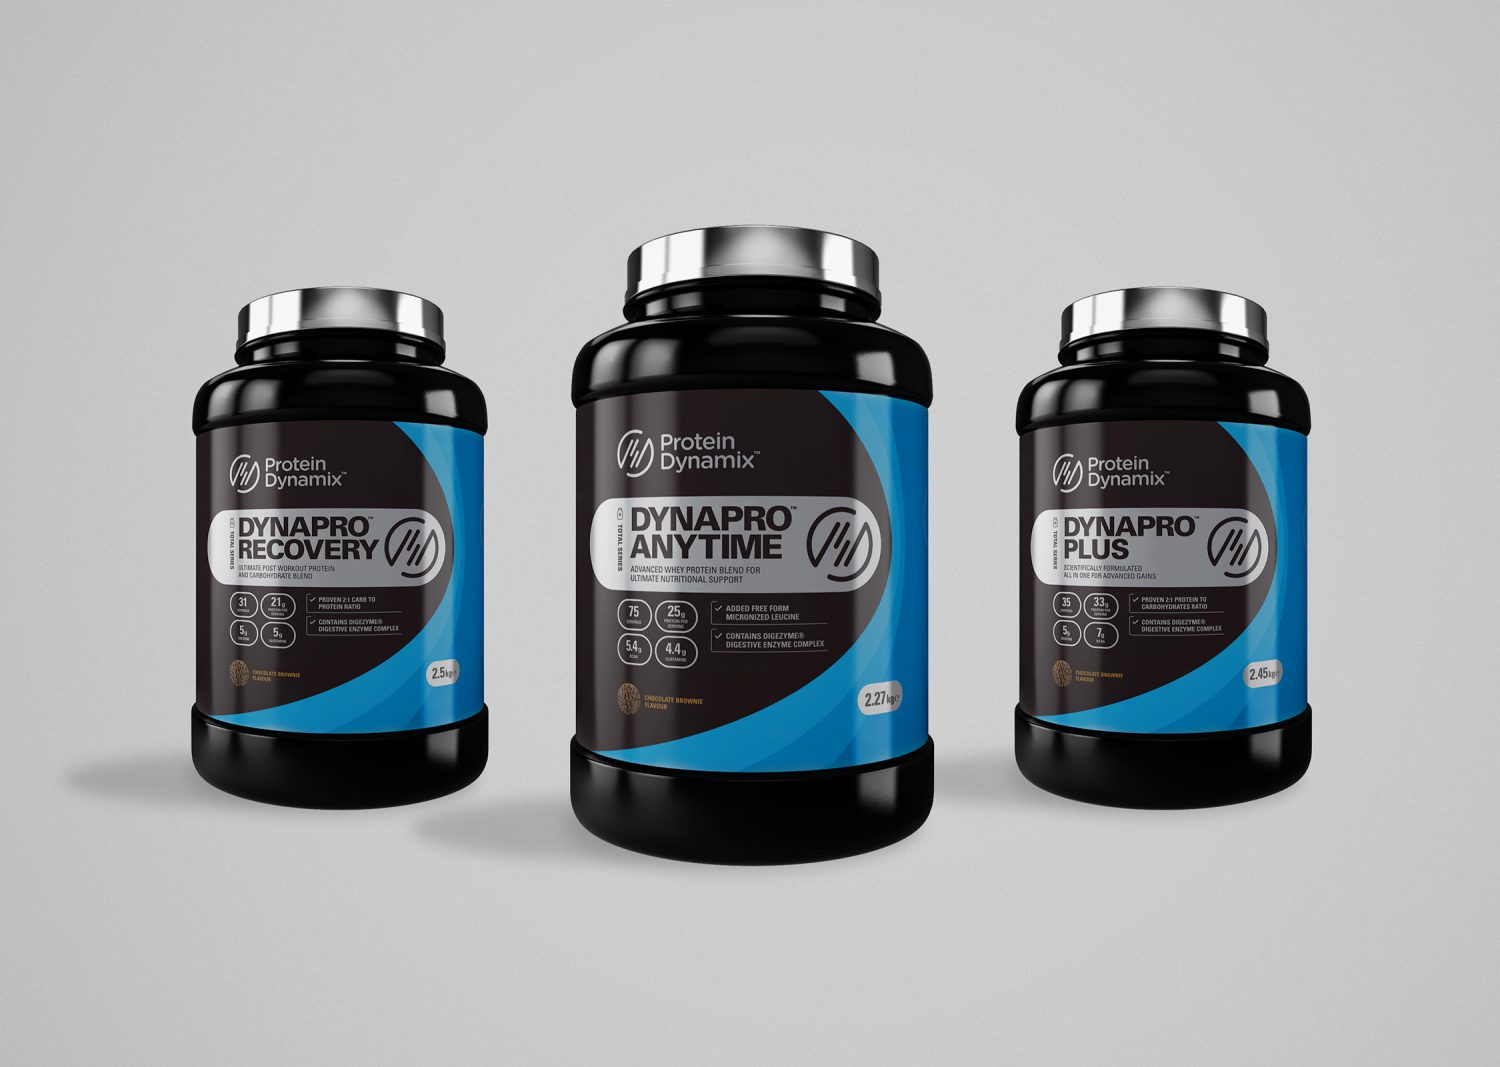 protein-dynamix-powder-bottles